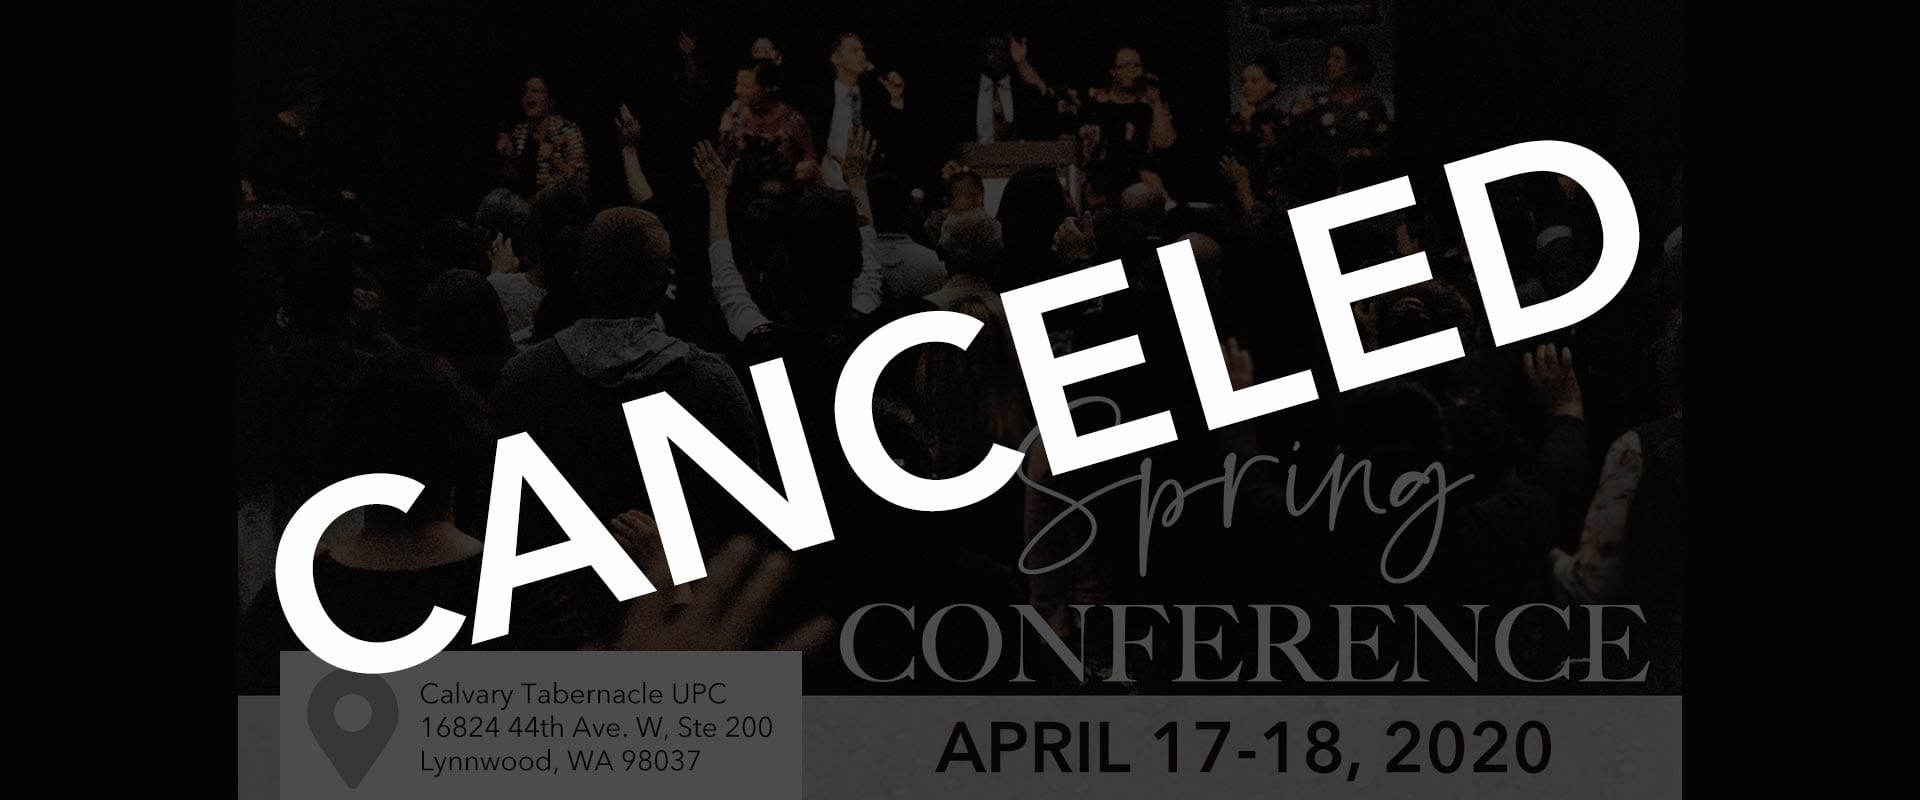 spring-conference-2020-canceled